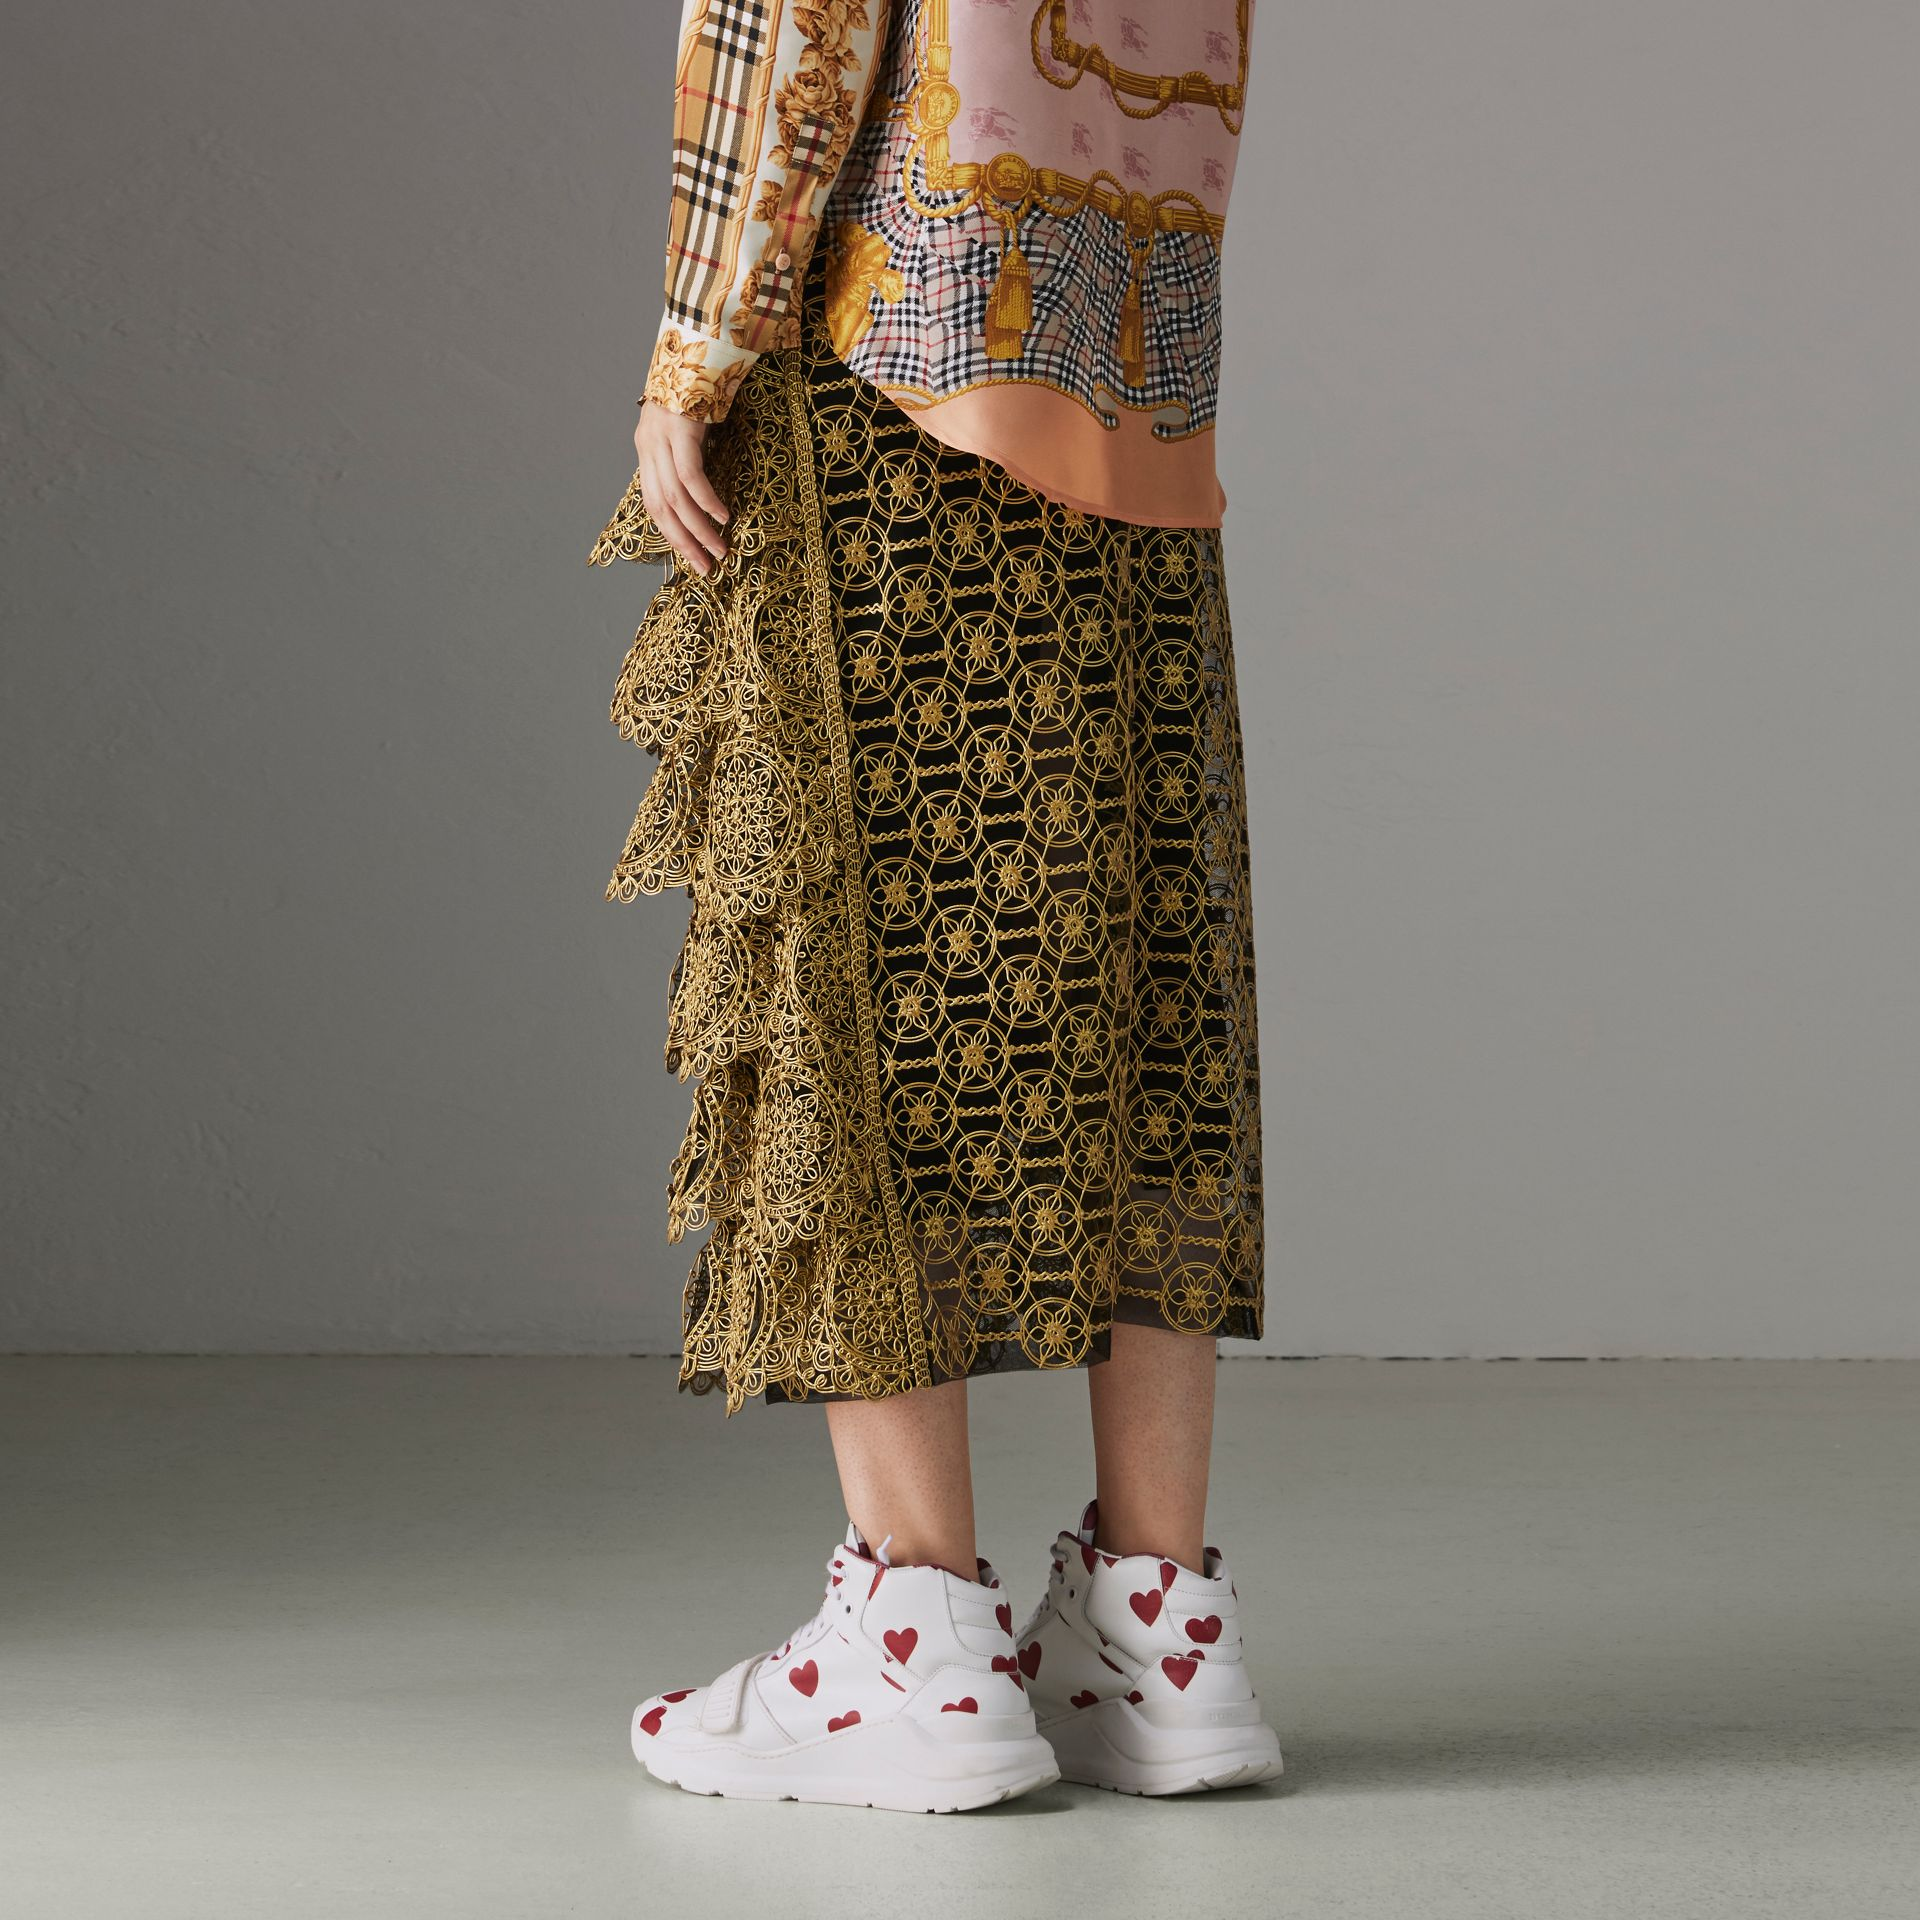 Tiered Silicone Lace Skirt in Gold - Women | Burberry Singapore - gallery image 2